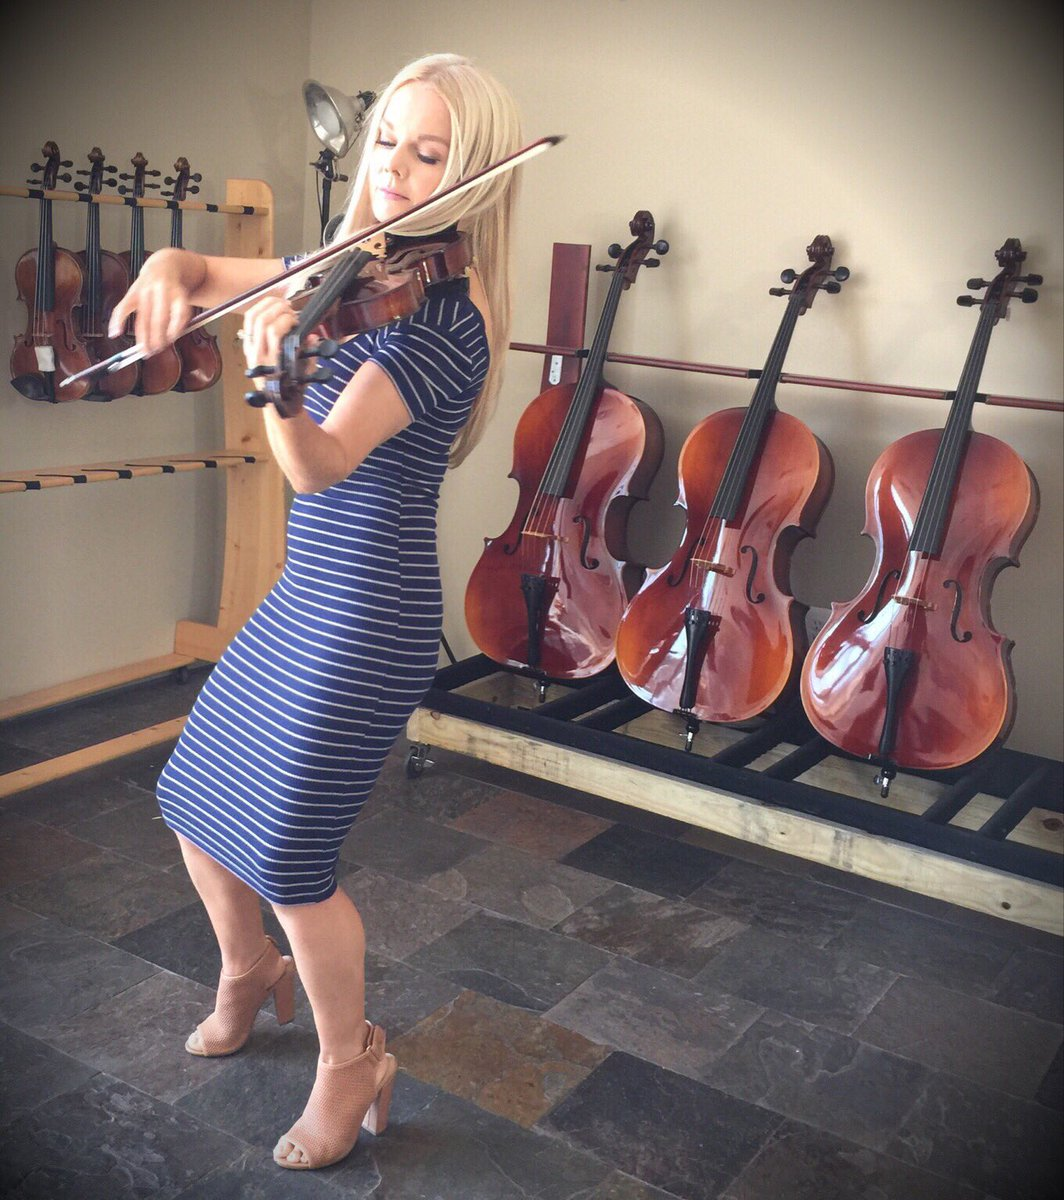 More details soon but here's a little news about my new violin/fiddle line Celtic Violins